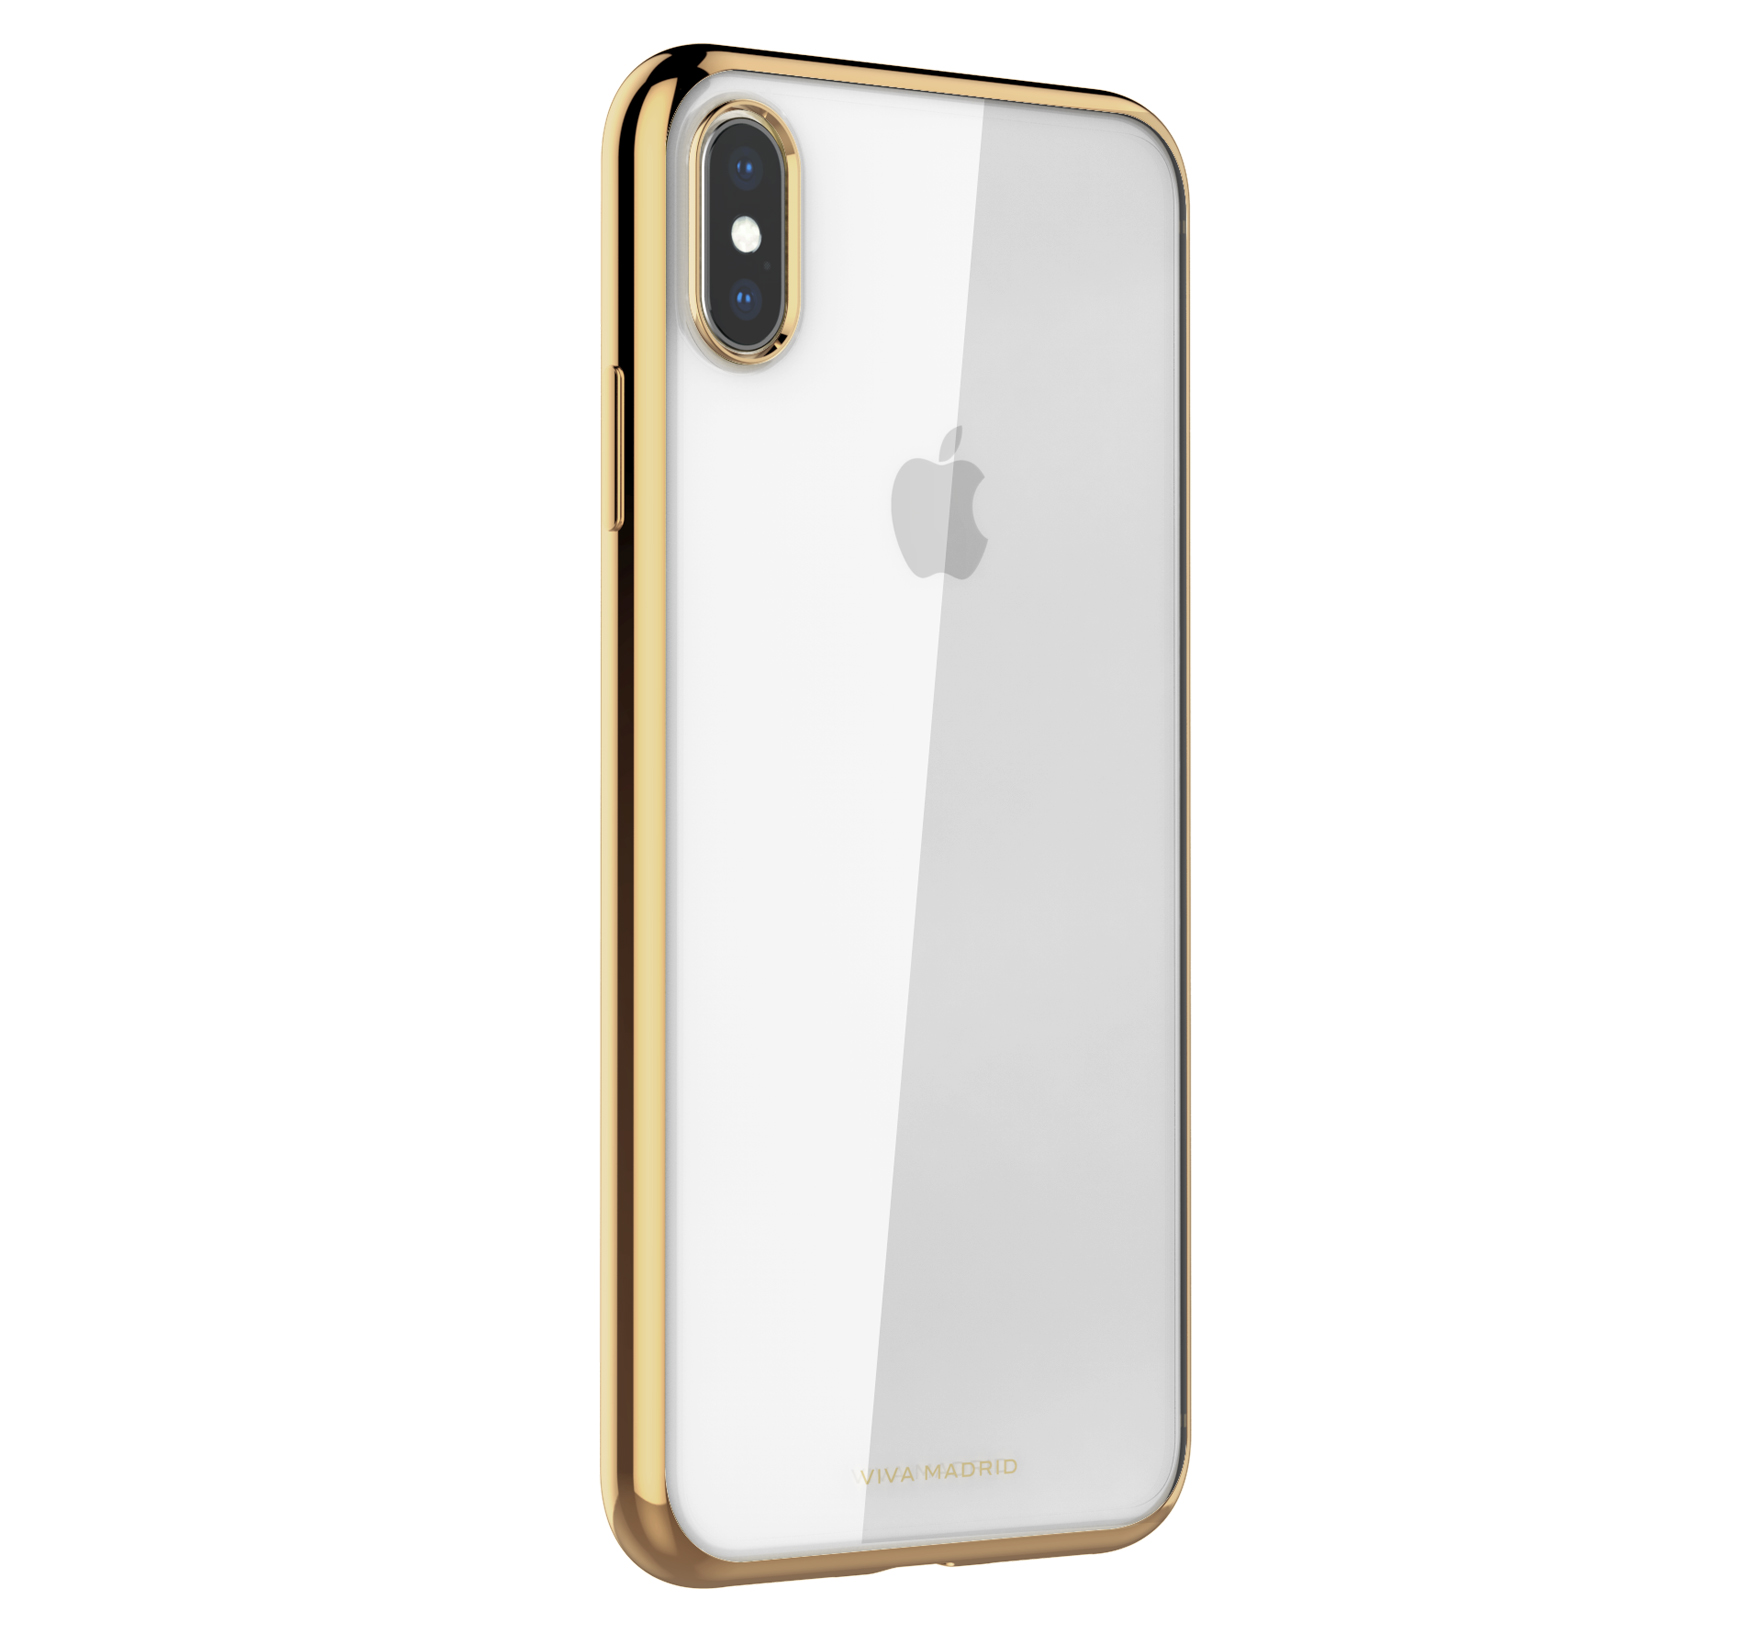 Viva Madrid Glazo Flex Back Case for iPhone Xs Max - Champagne Gold